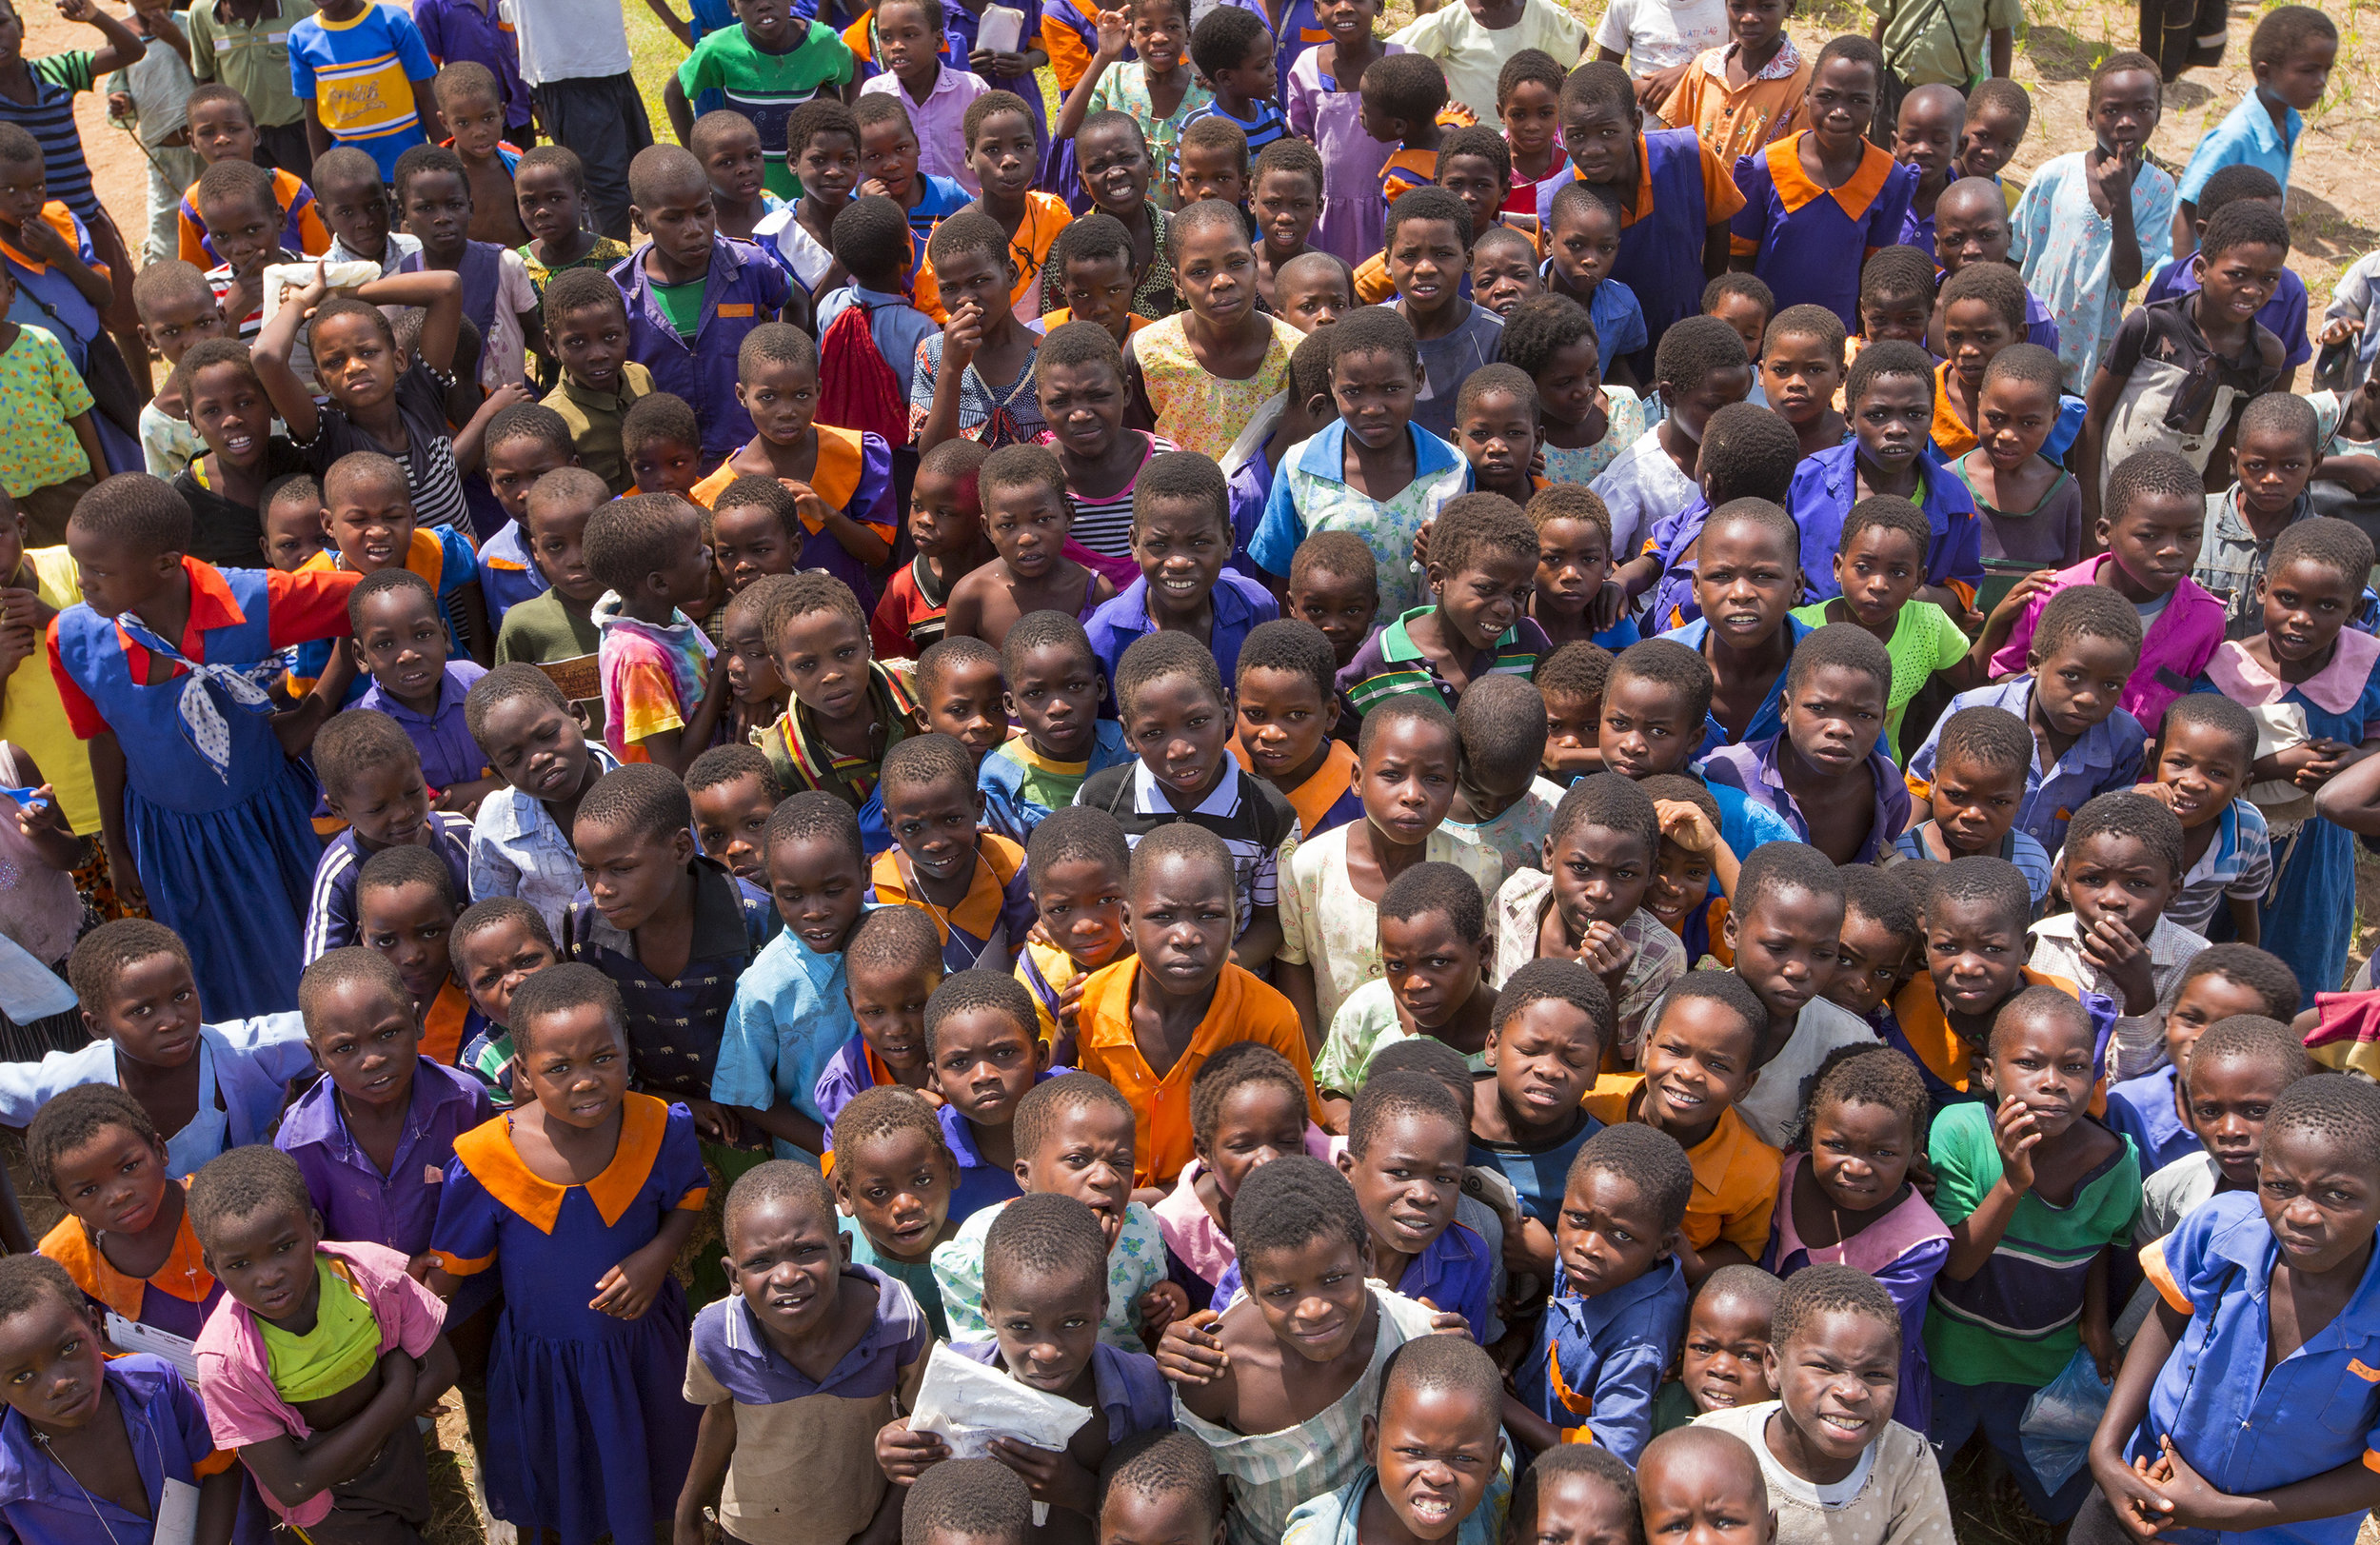 United Purpose reaches 1.2 rural people in Malawi every year